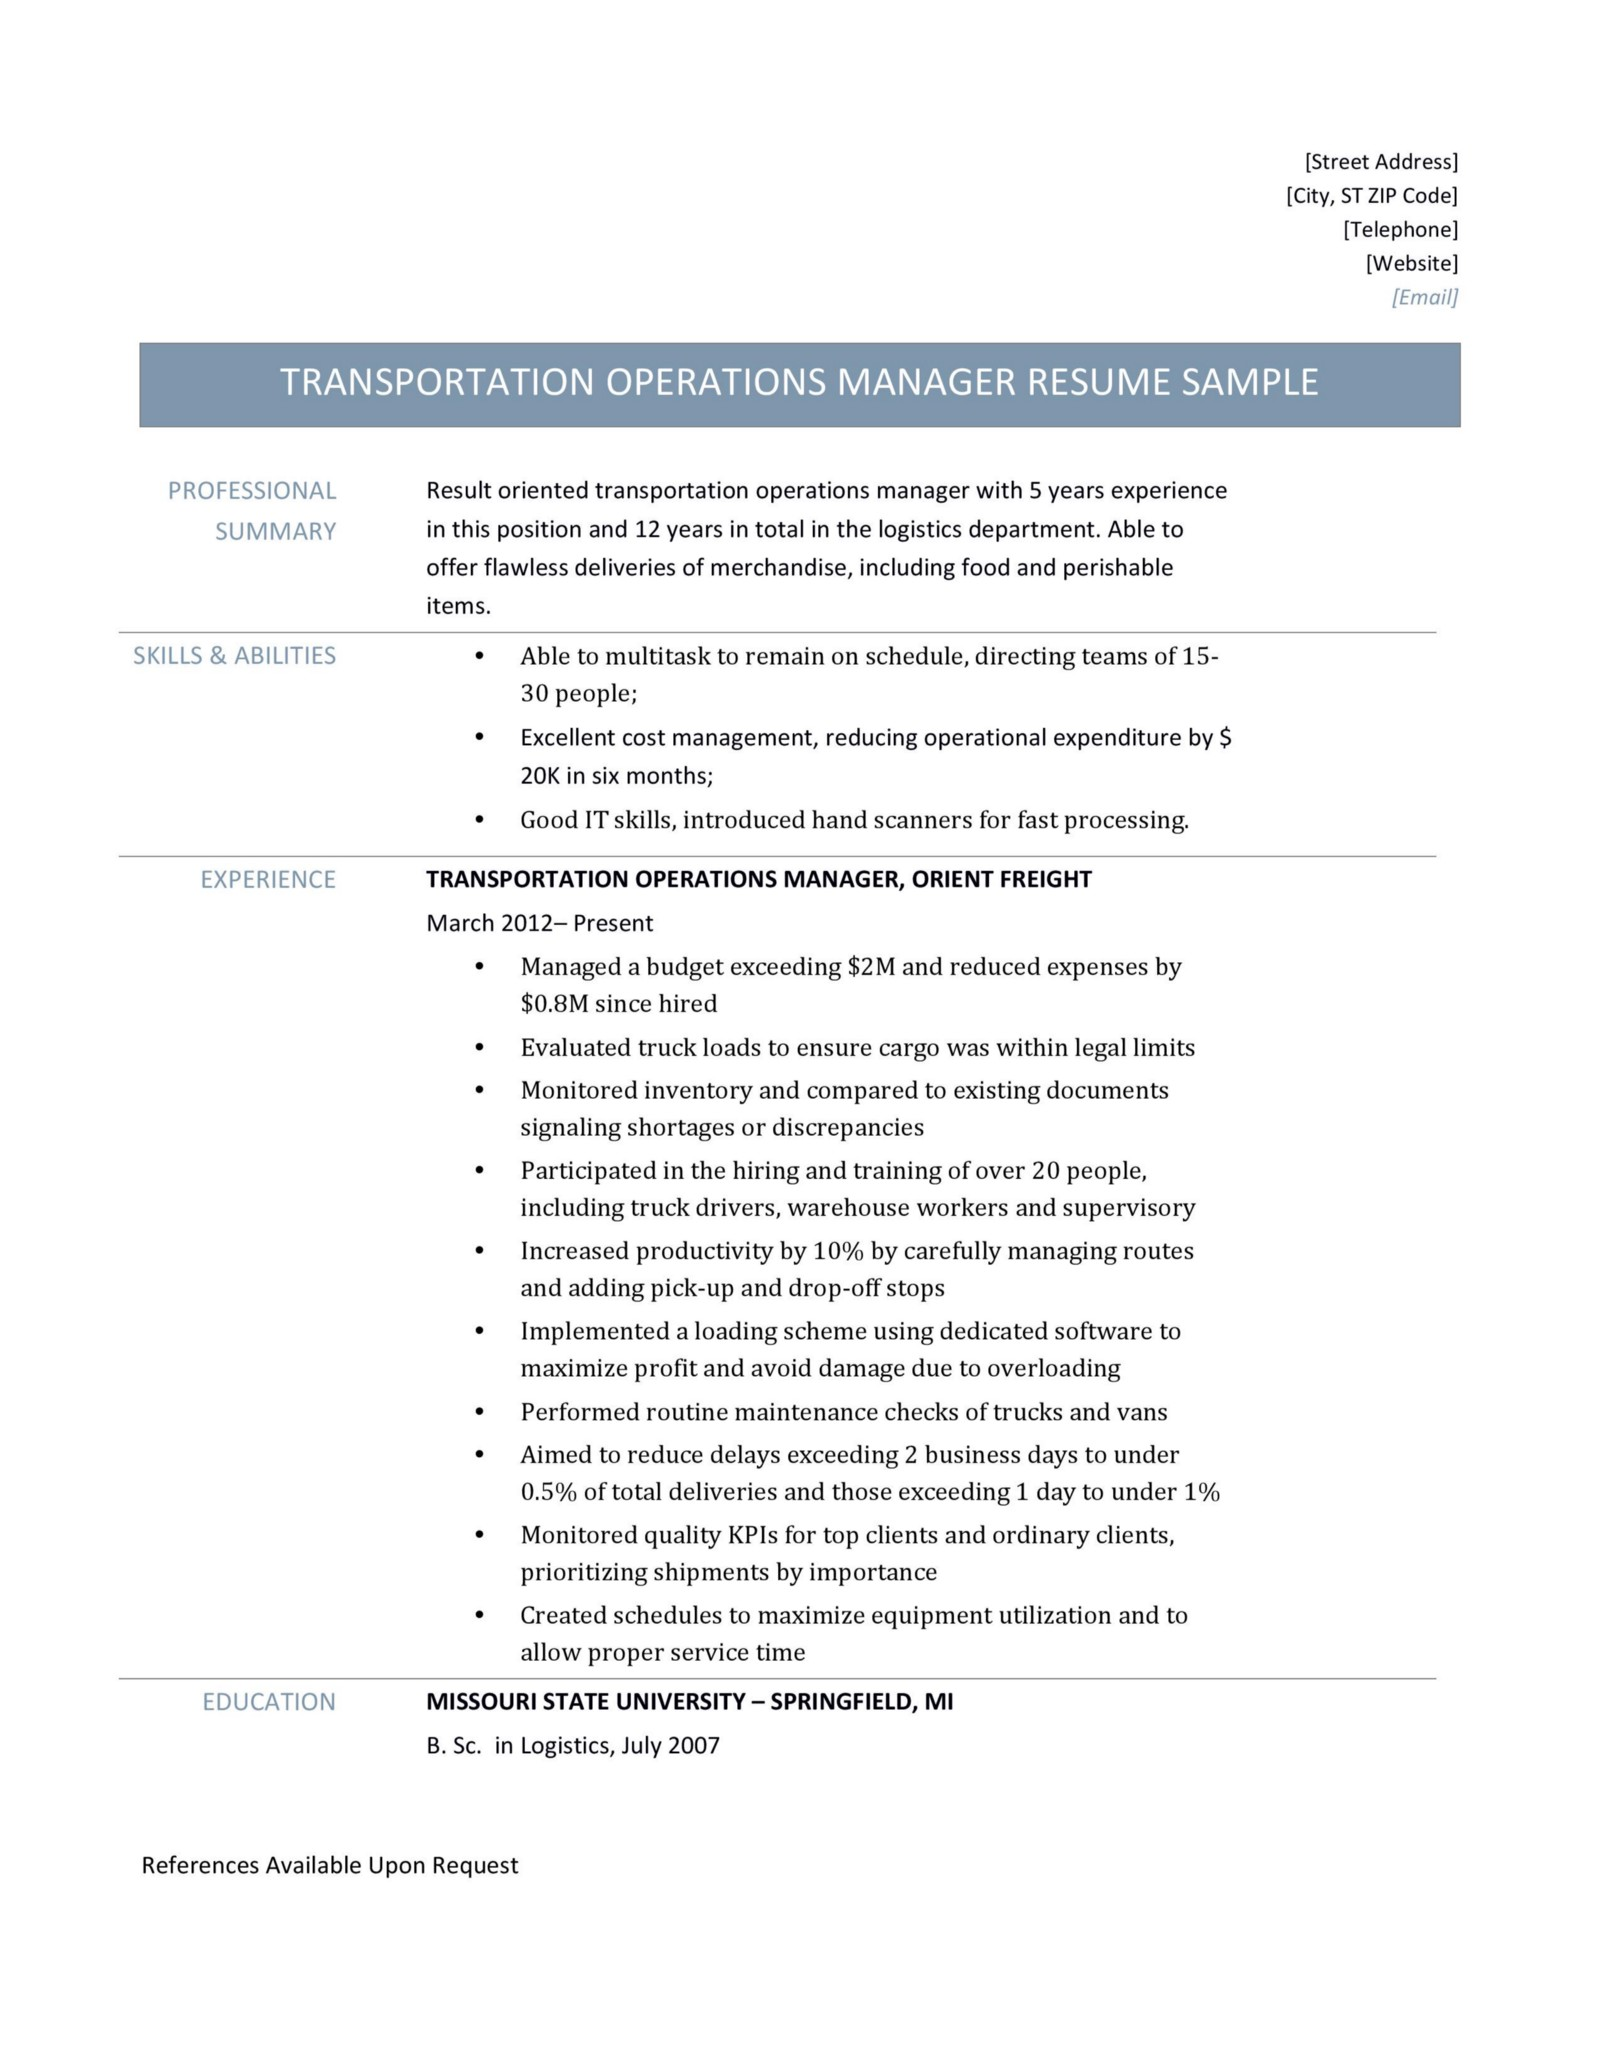 transportation operations manager resume samples  u2013 online resume builders  u2013 medium